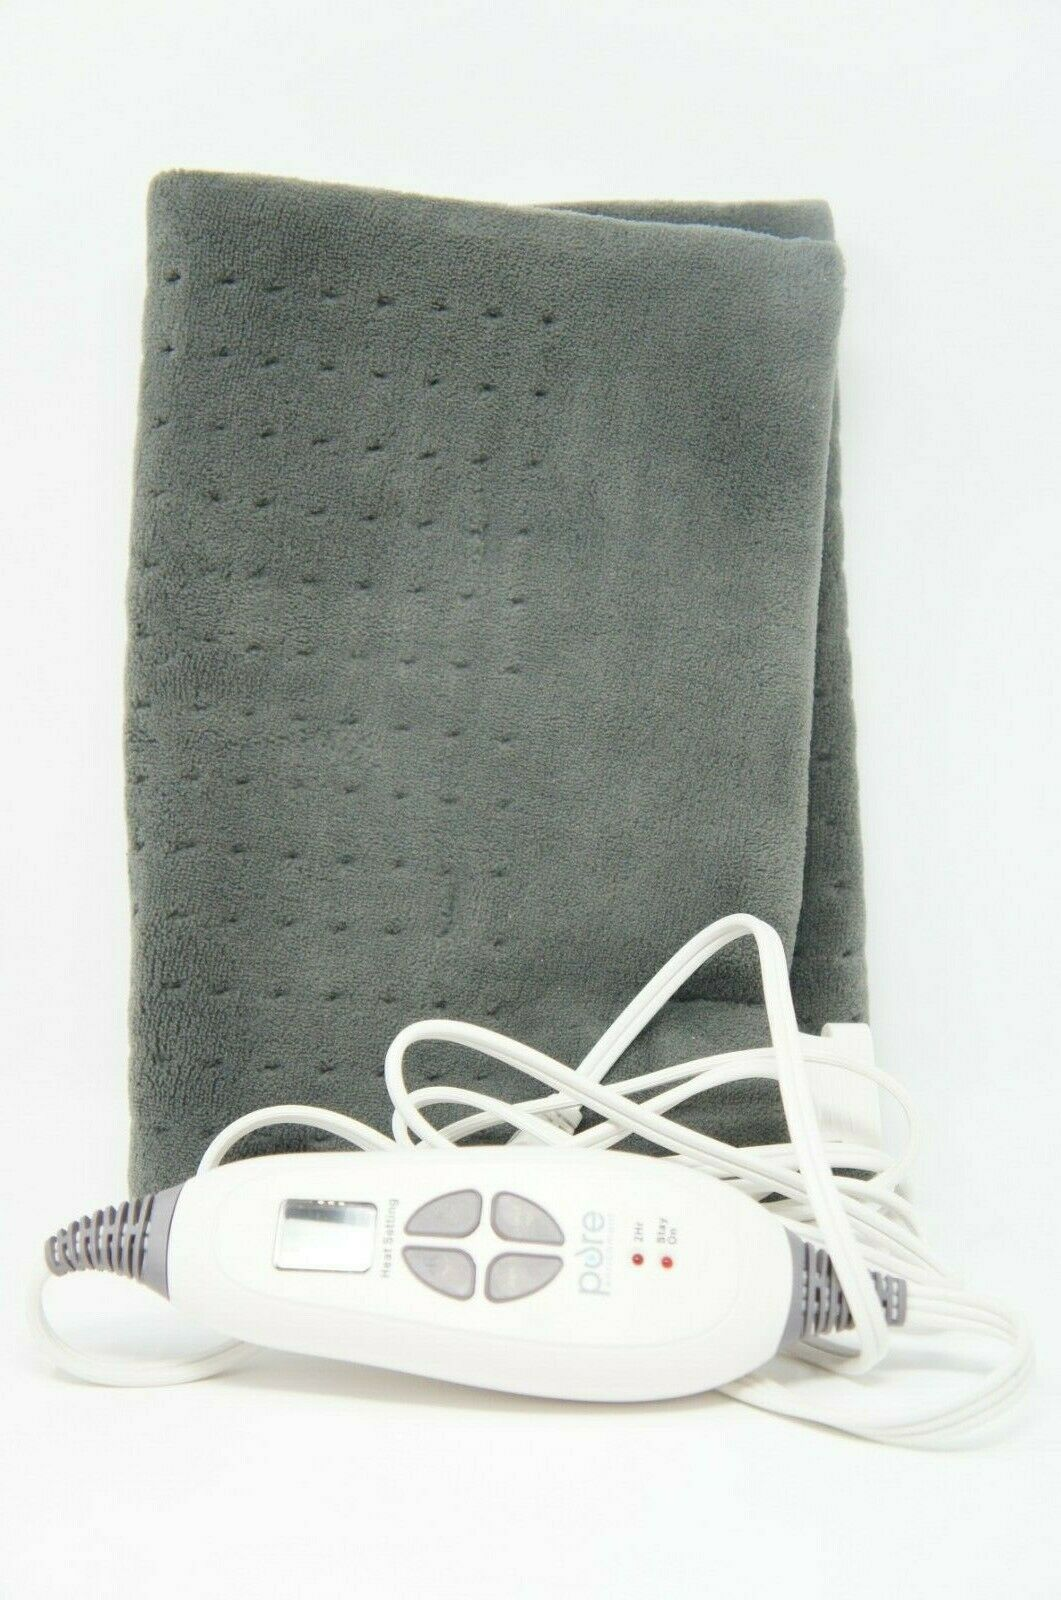 "PureRelief XL King Size Heating Pad 12"" x 24"" Fast-Heating CHARCOAL (Like New)"